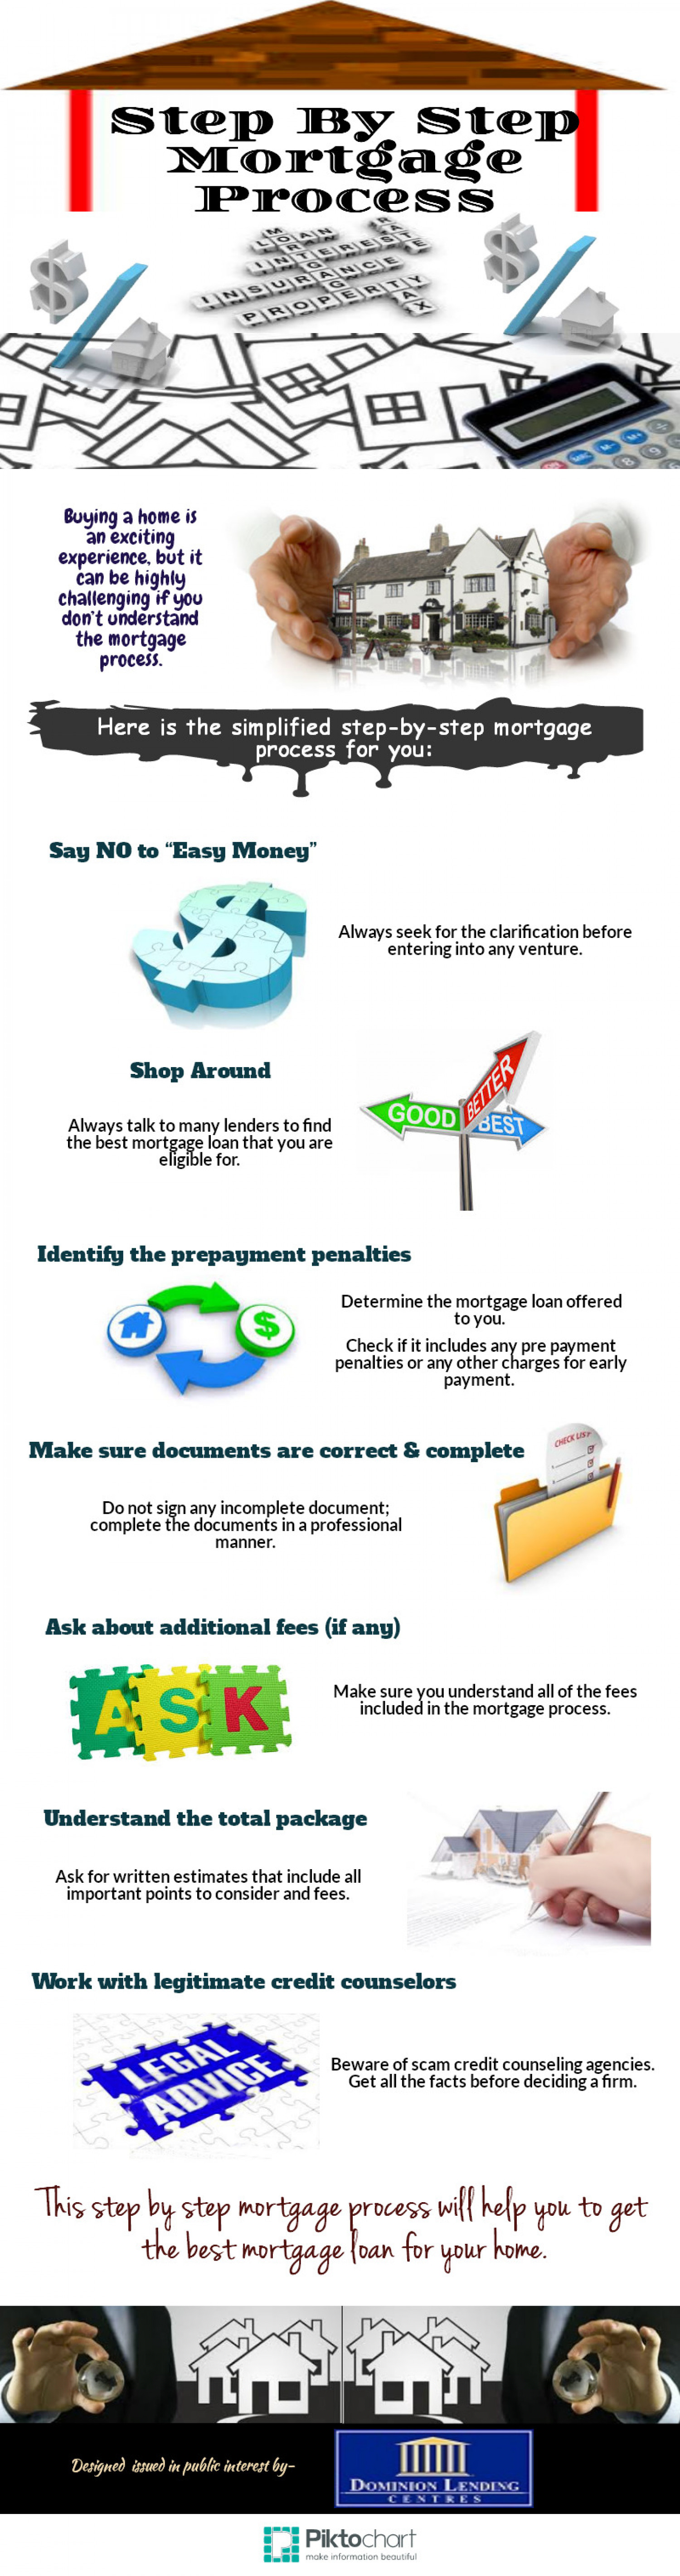 Step-by-Step Mortgage Process Infographic